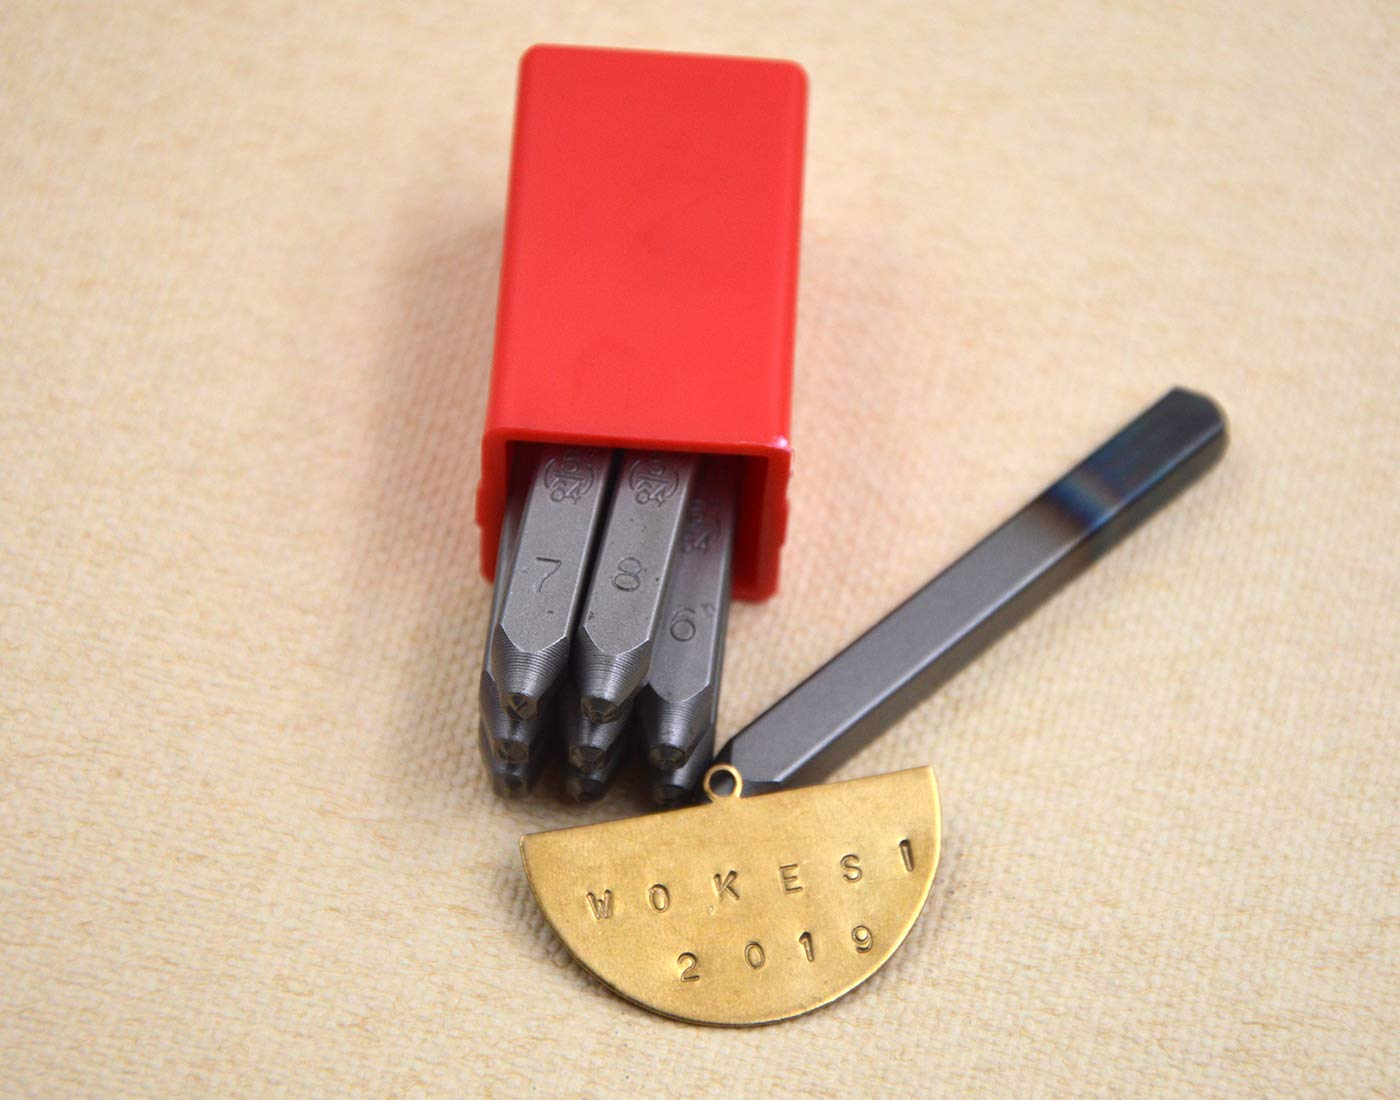 4mm Wokesi 5//32 Tall Letter Stamp Punch Set for Jewel Making//Steel Stamp Die Punch//Wood//Leather 4MM